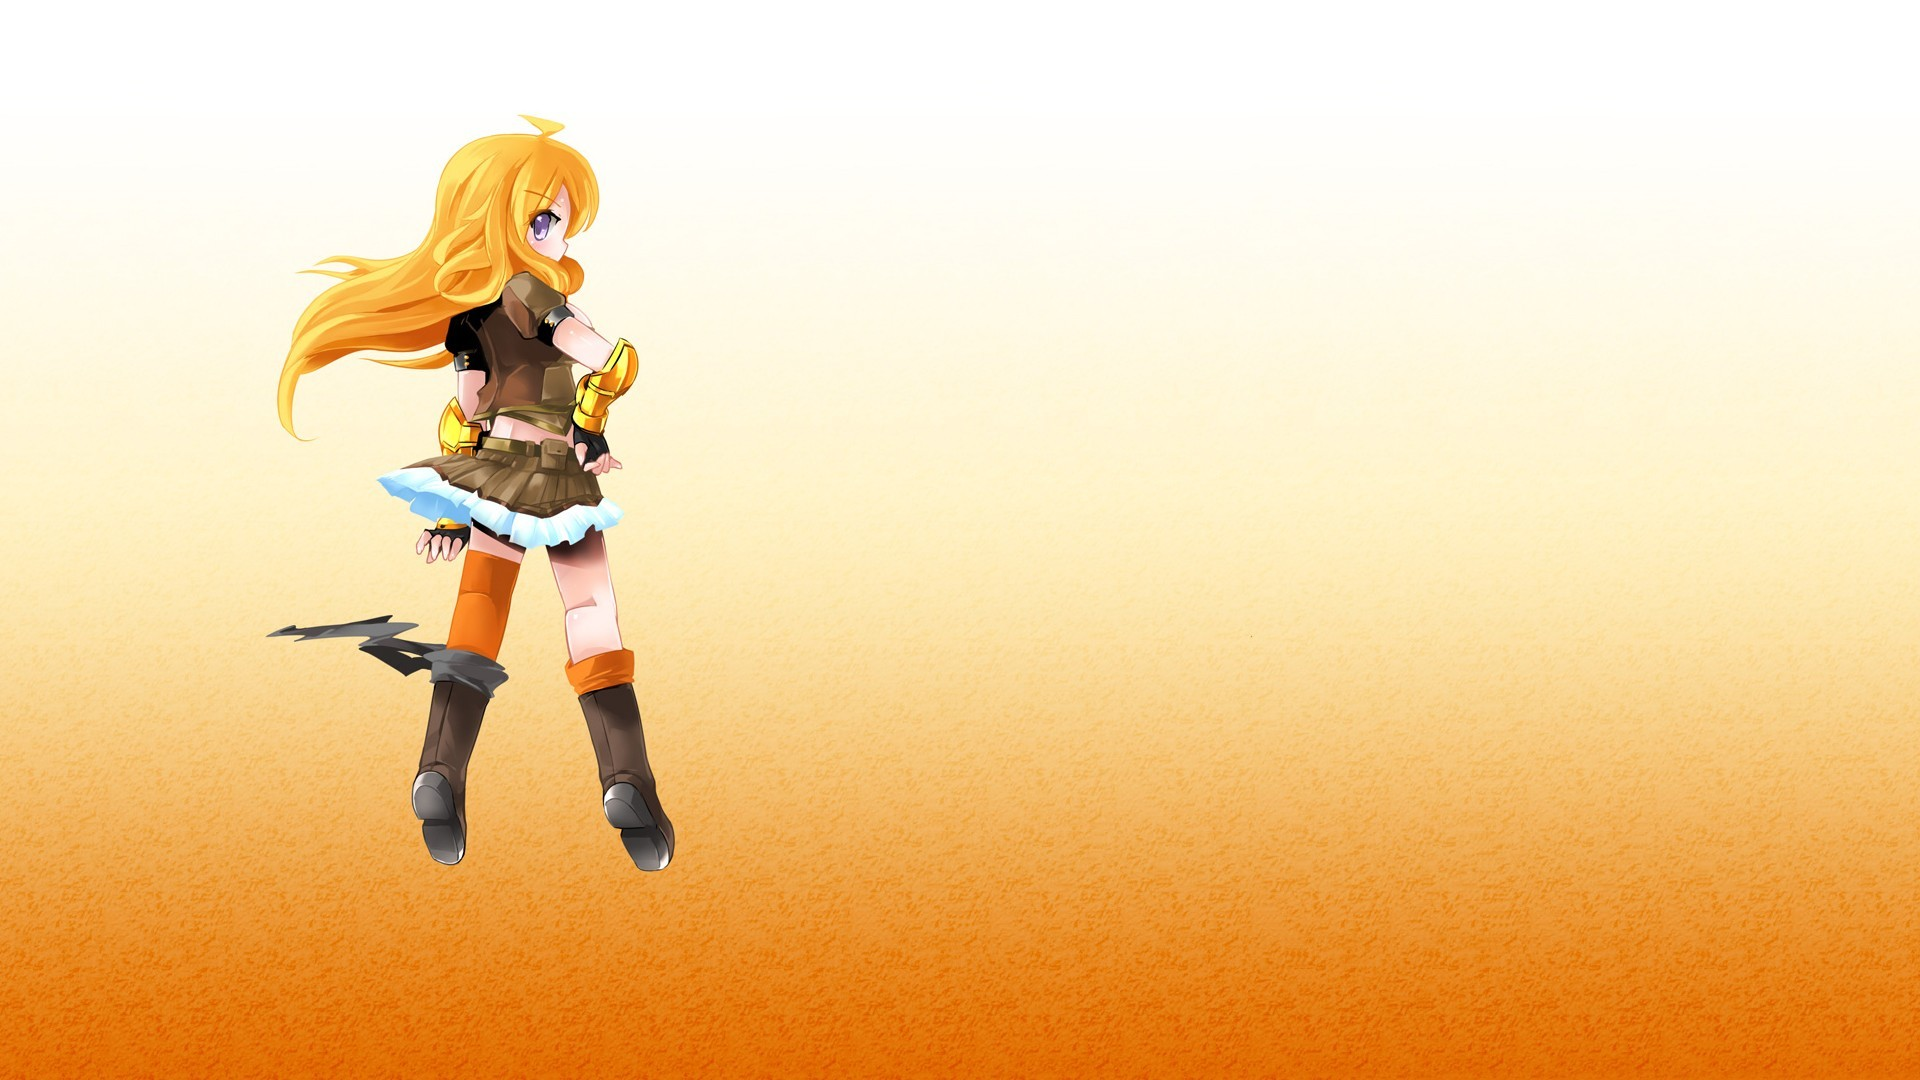 Res: 1920x1080, rwby yang iphone wallpaper rwby yang iphone wallpaper ...